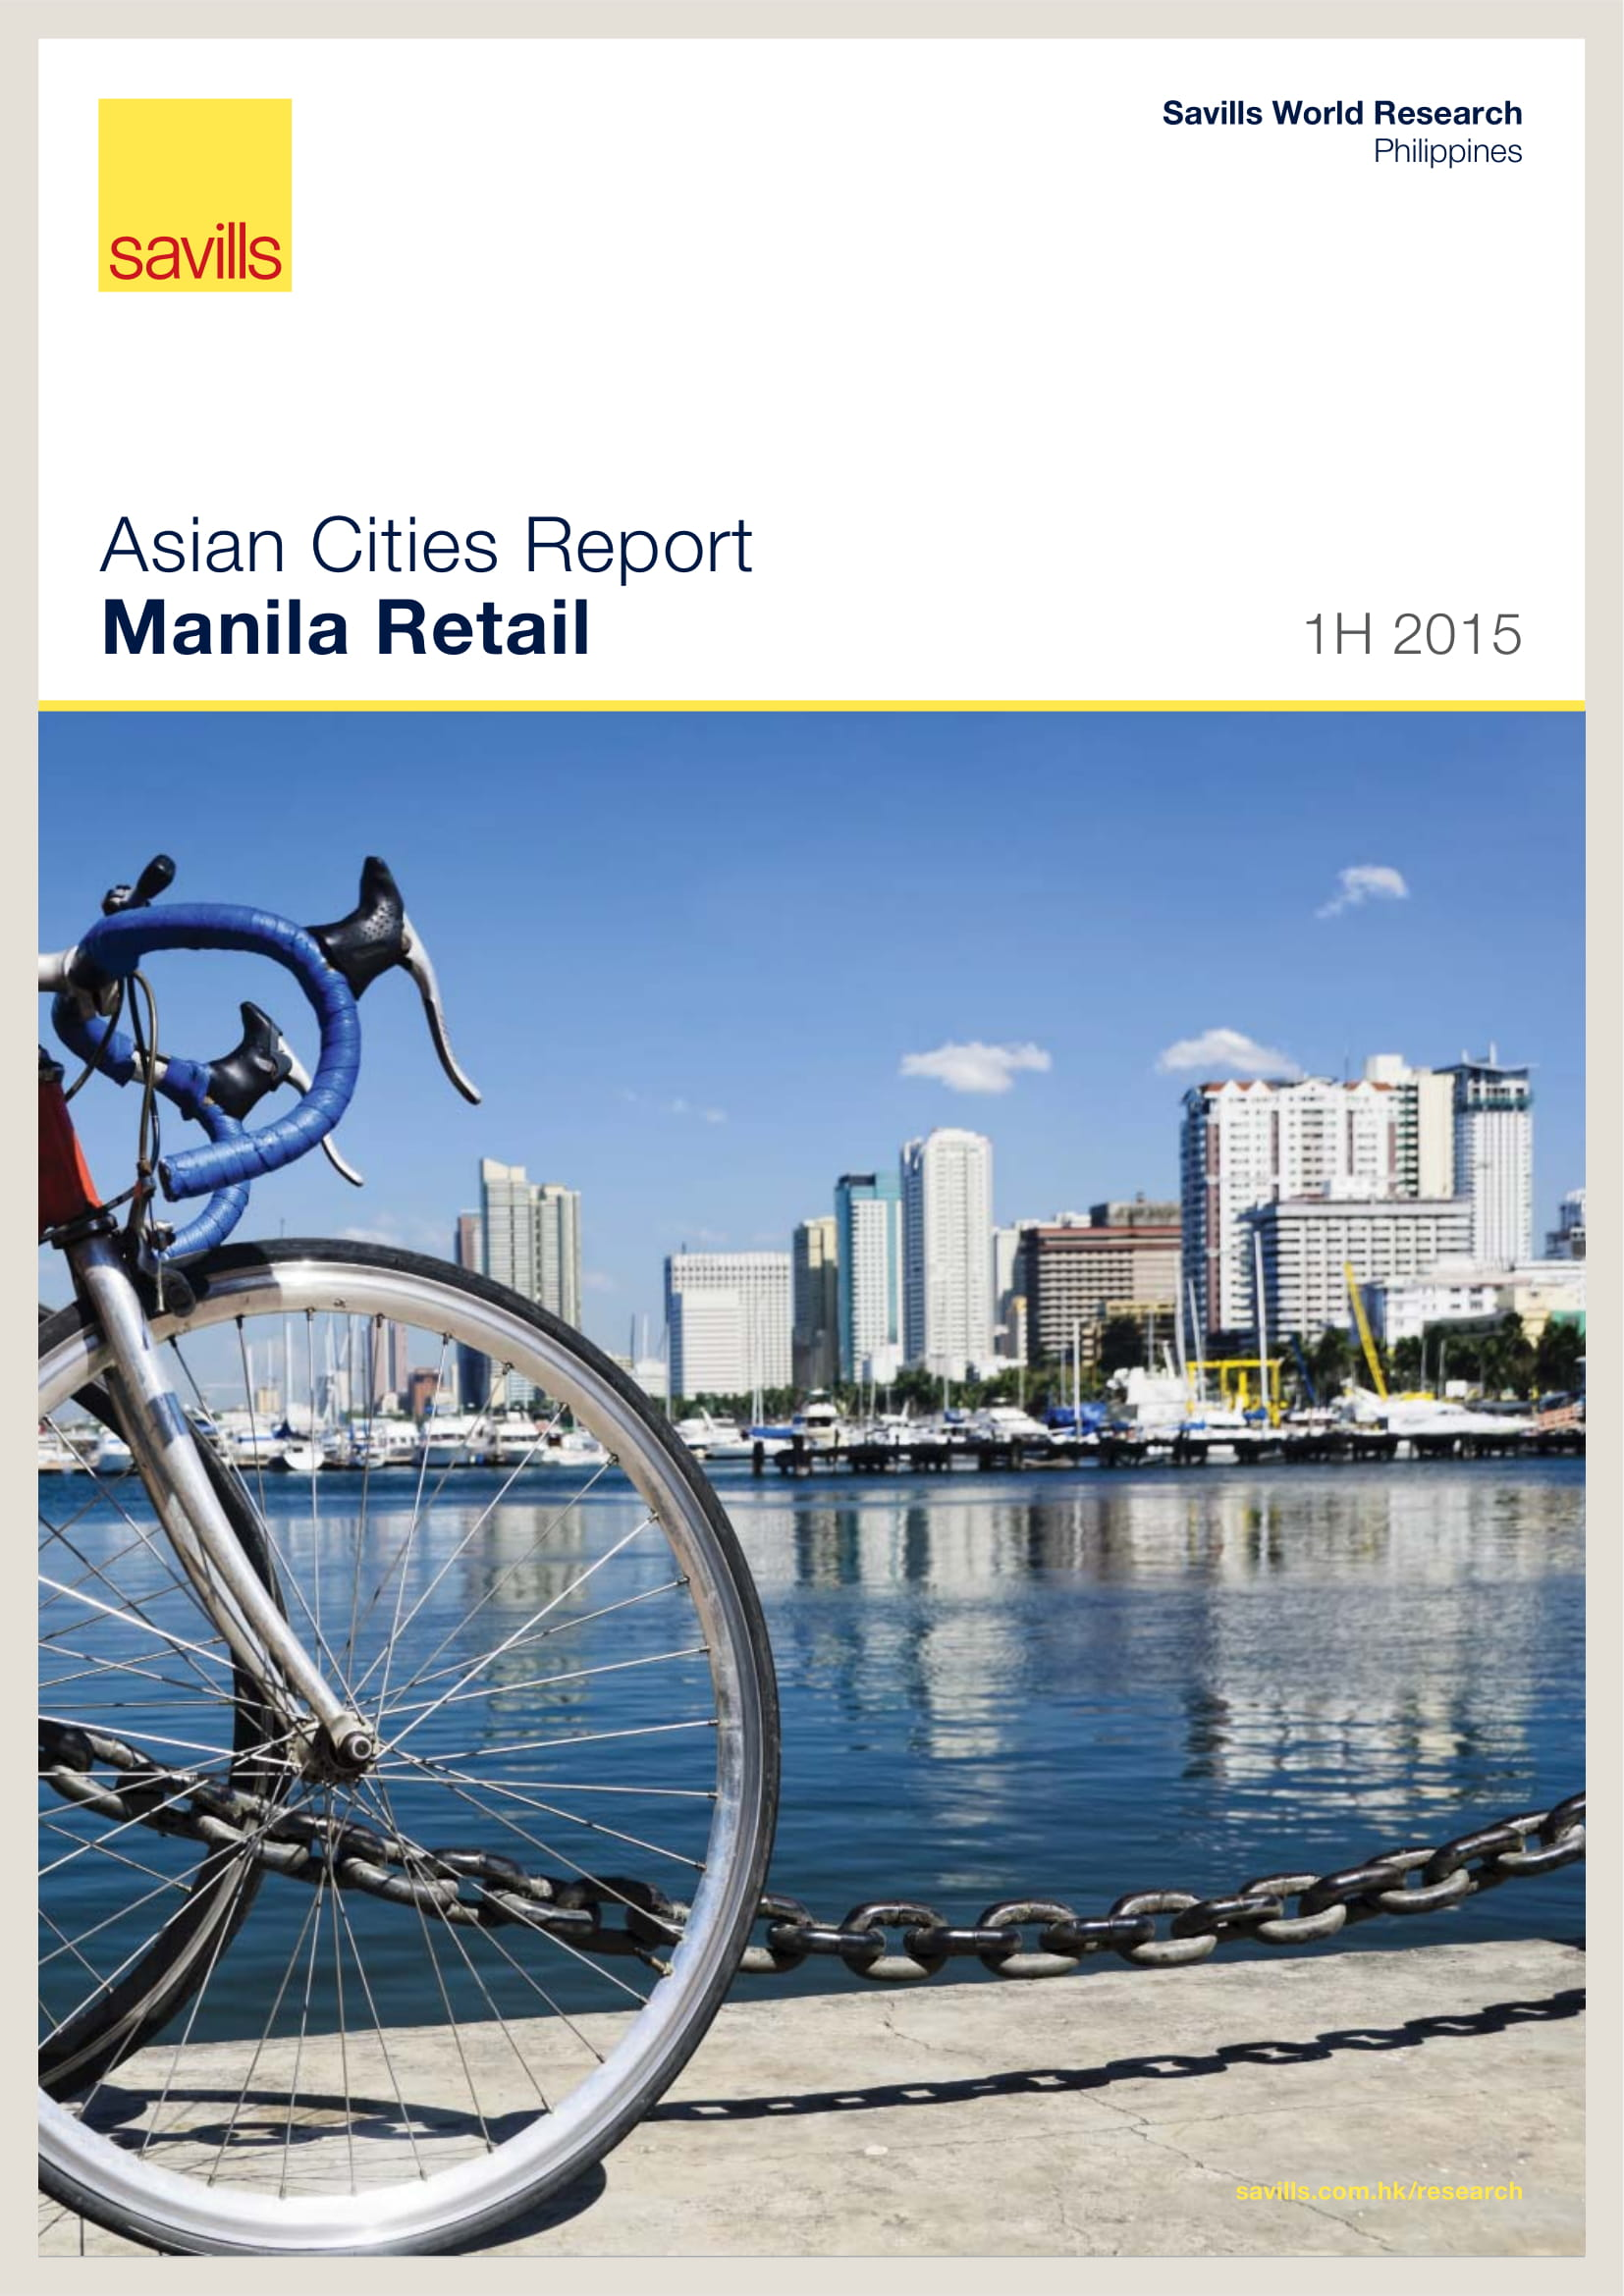 Asian Cities Report Manila Retail 1H 2015